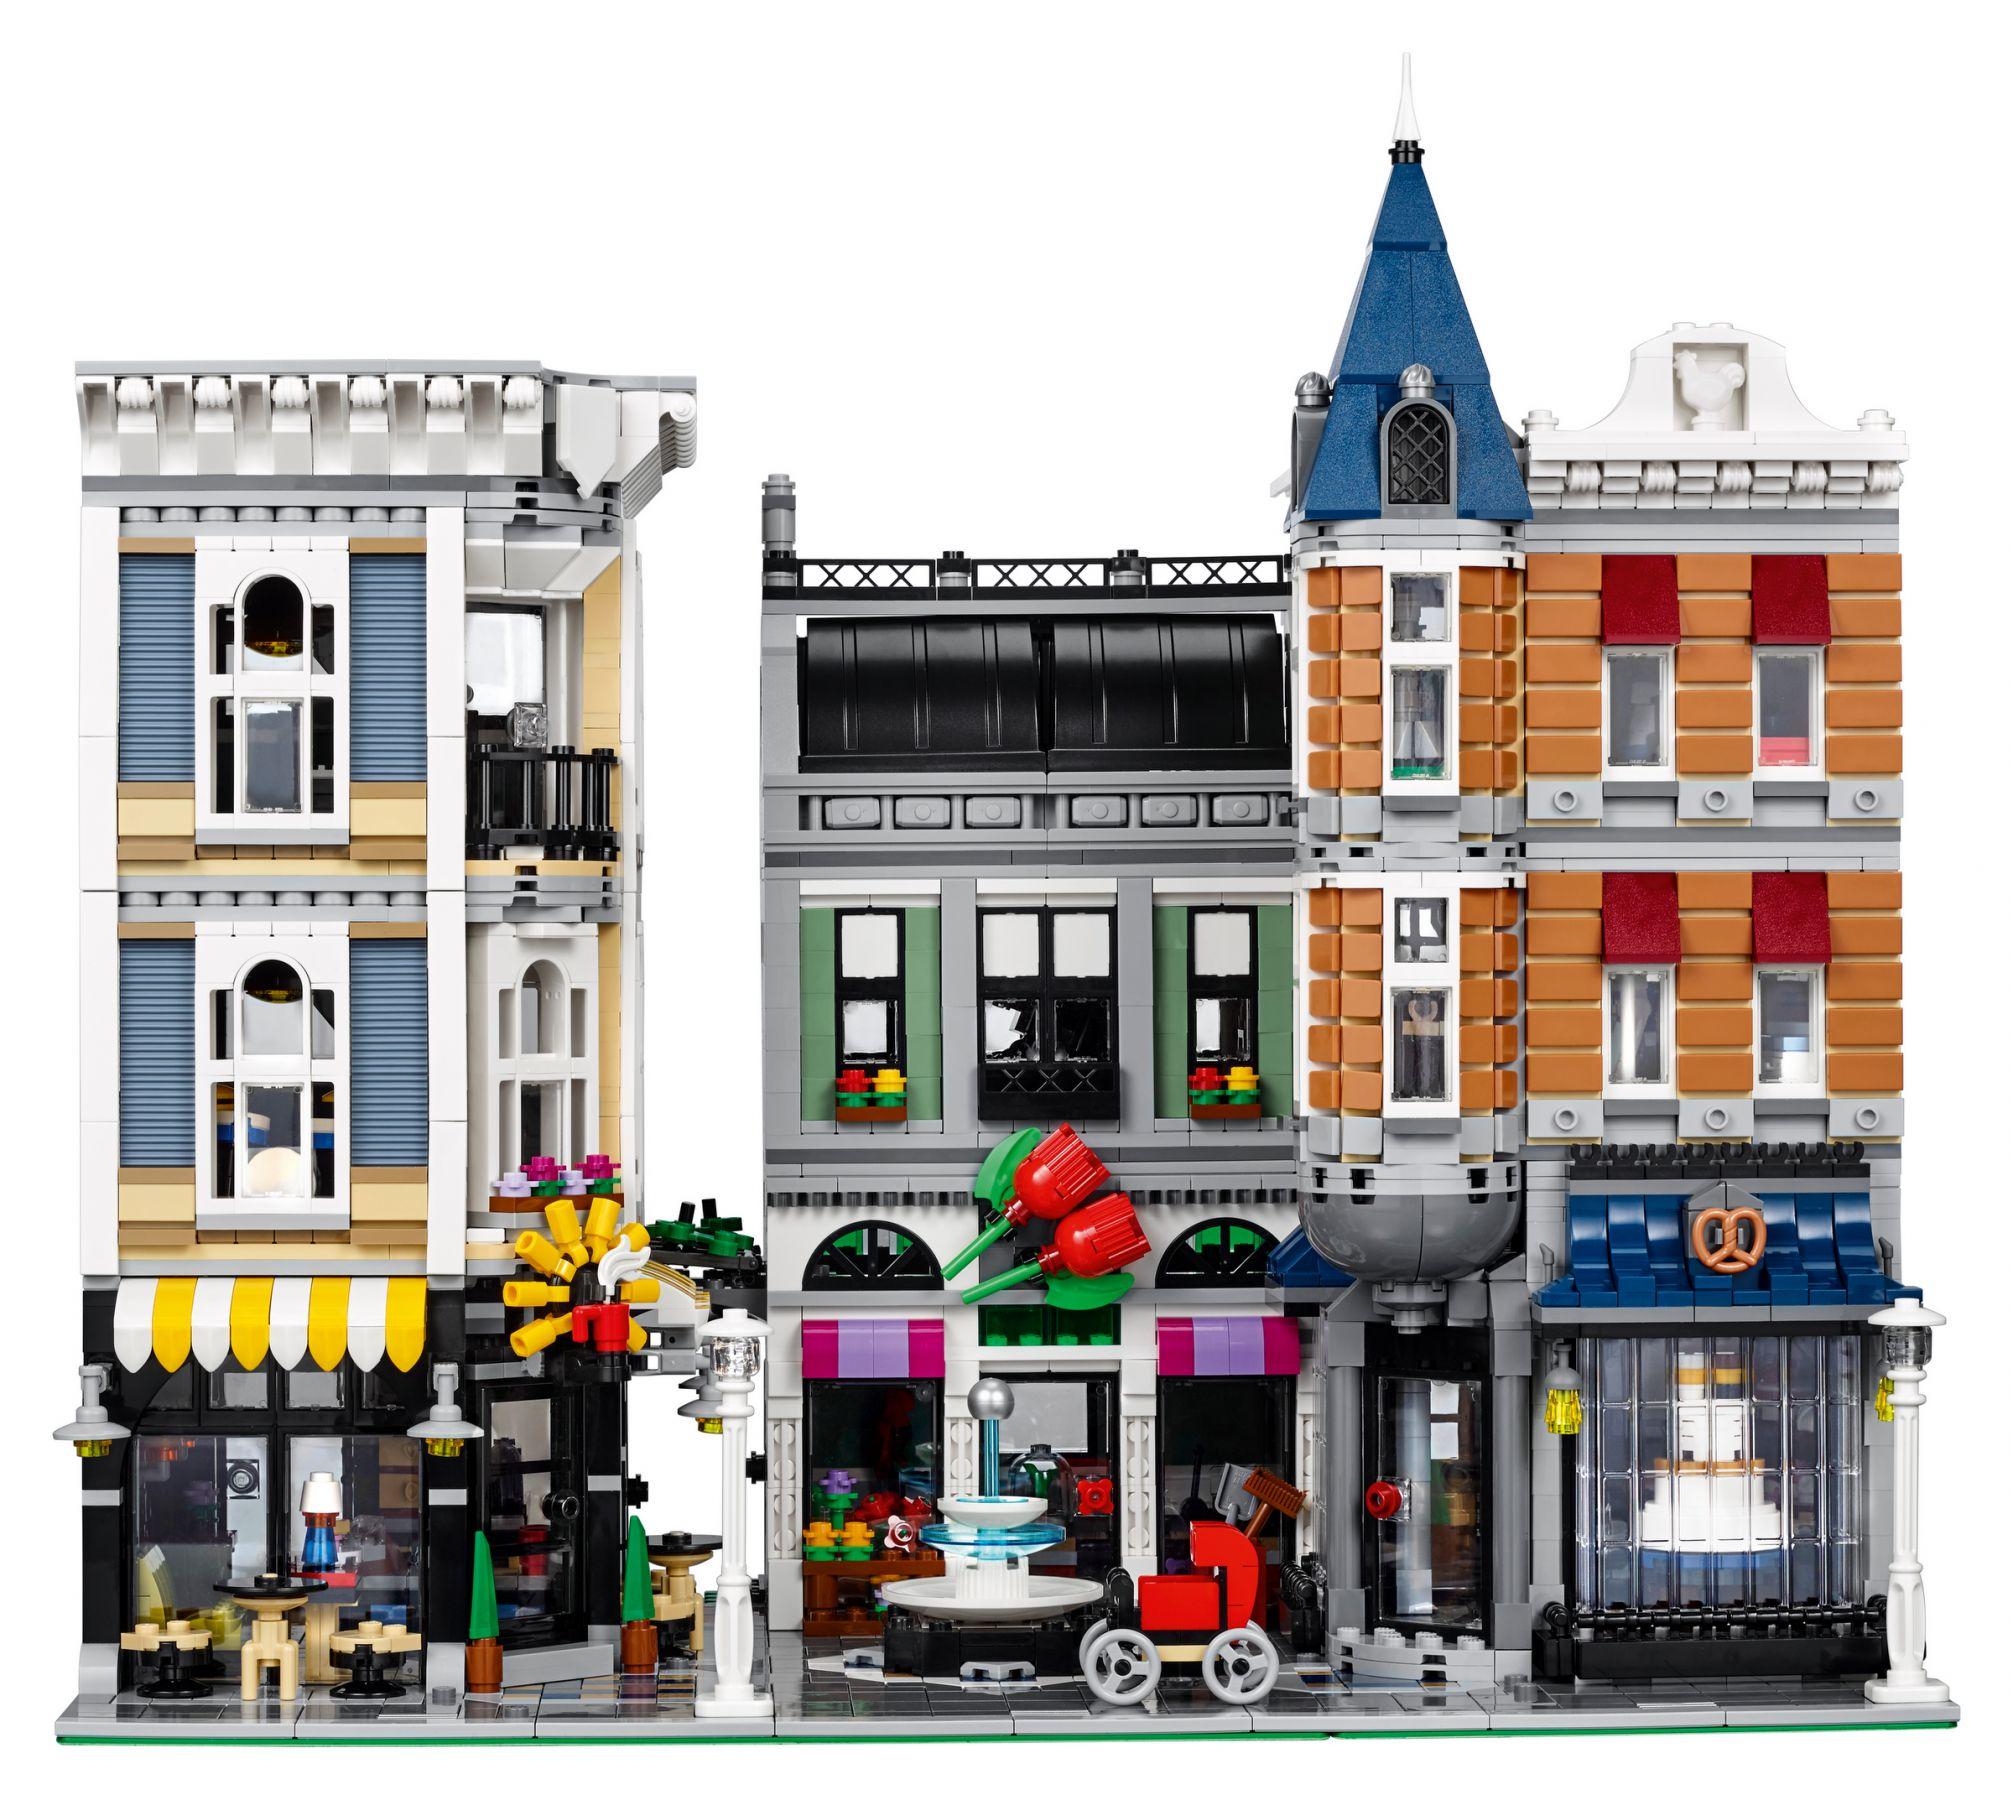 LEGO Advanced Models 10255 Stadtleben (Assembly Square) LEGO_10255_alt3.jpg